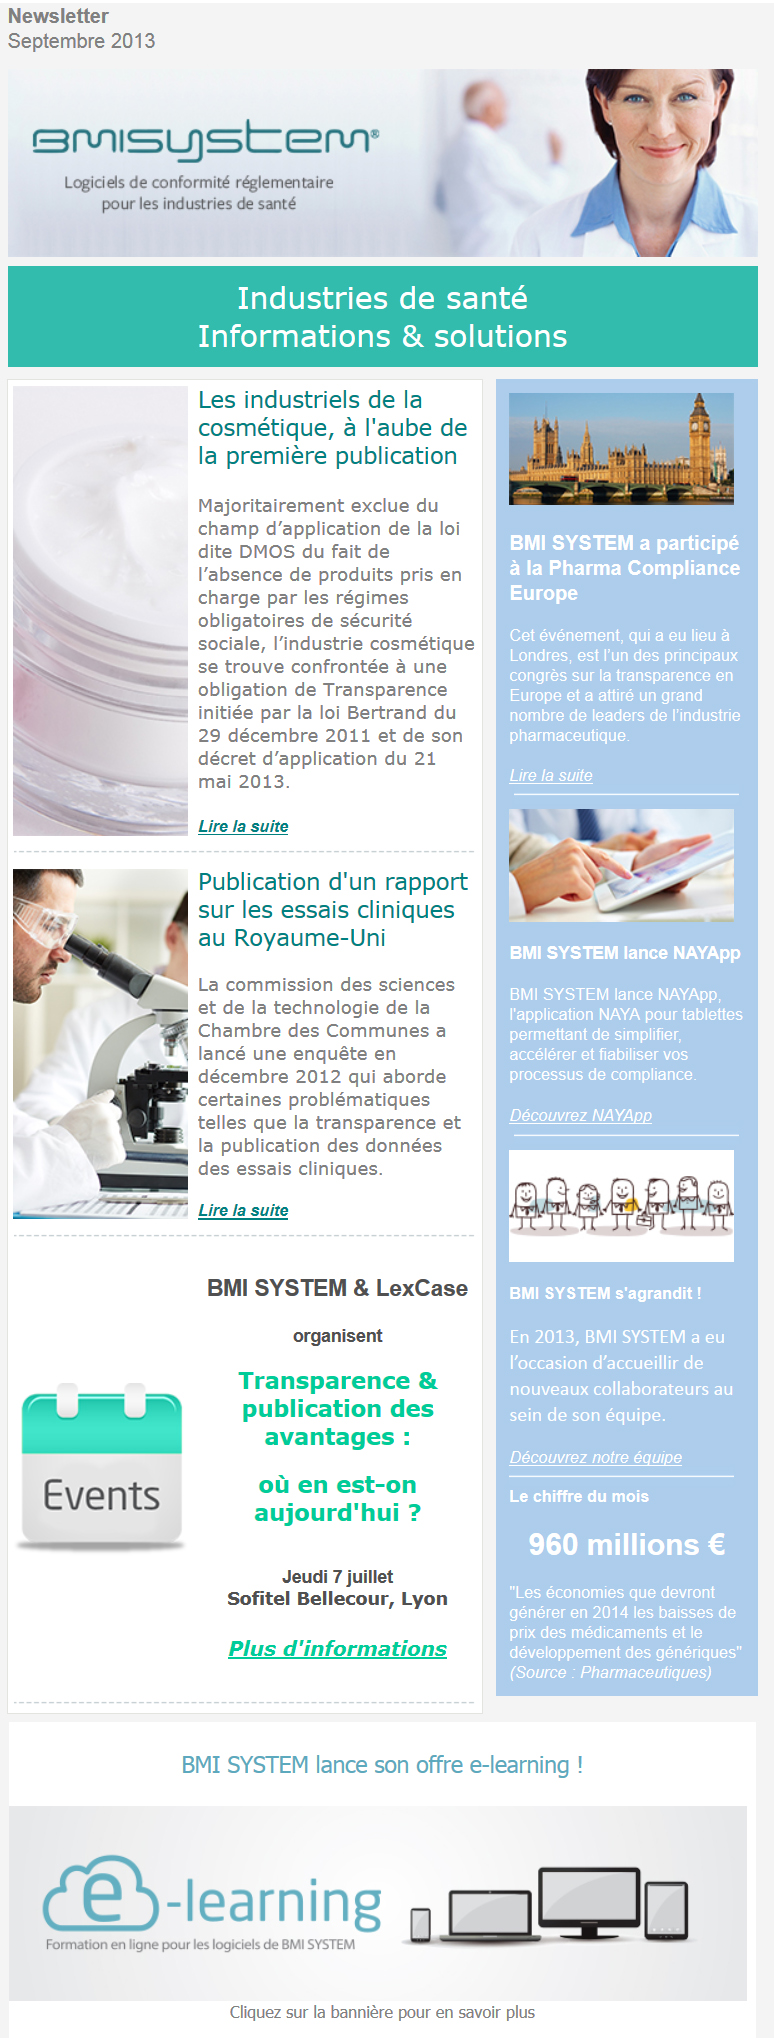 Newsletter septembre 2013 FR